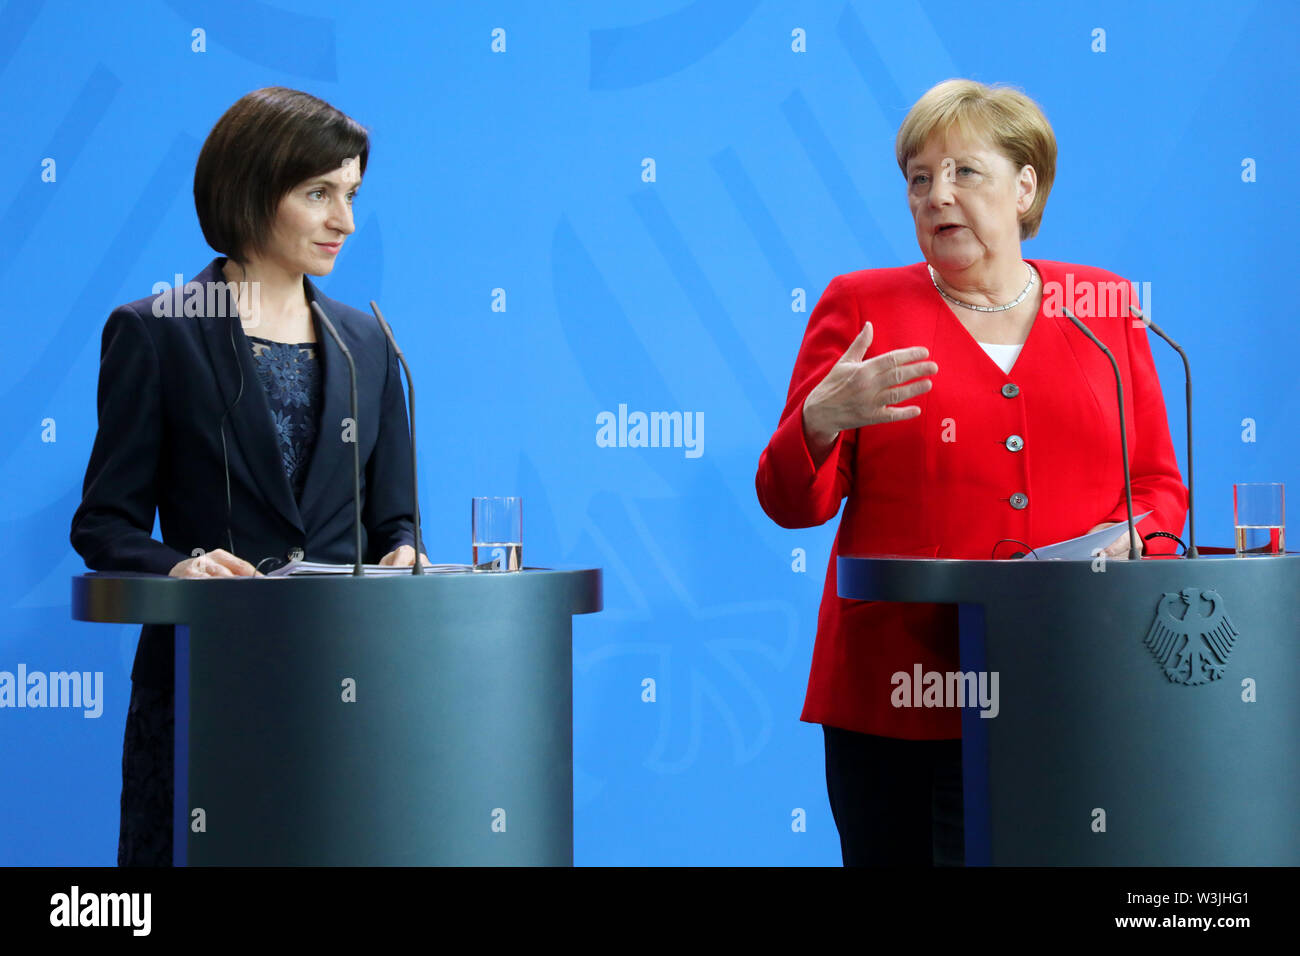 Berlin, Germany. 16th July, 2019. Federal Chancellor Angela Merkel (CDU, r) and Maia Sandu, Moldovan Prime Minister, answer questions from journalists in the Federal Chancellery. Credit: Wolfgang Kumm/dpa/Alamy Live News - Stock Image